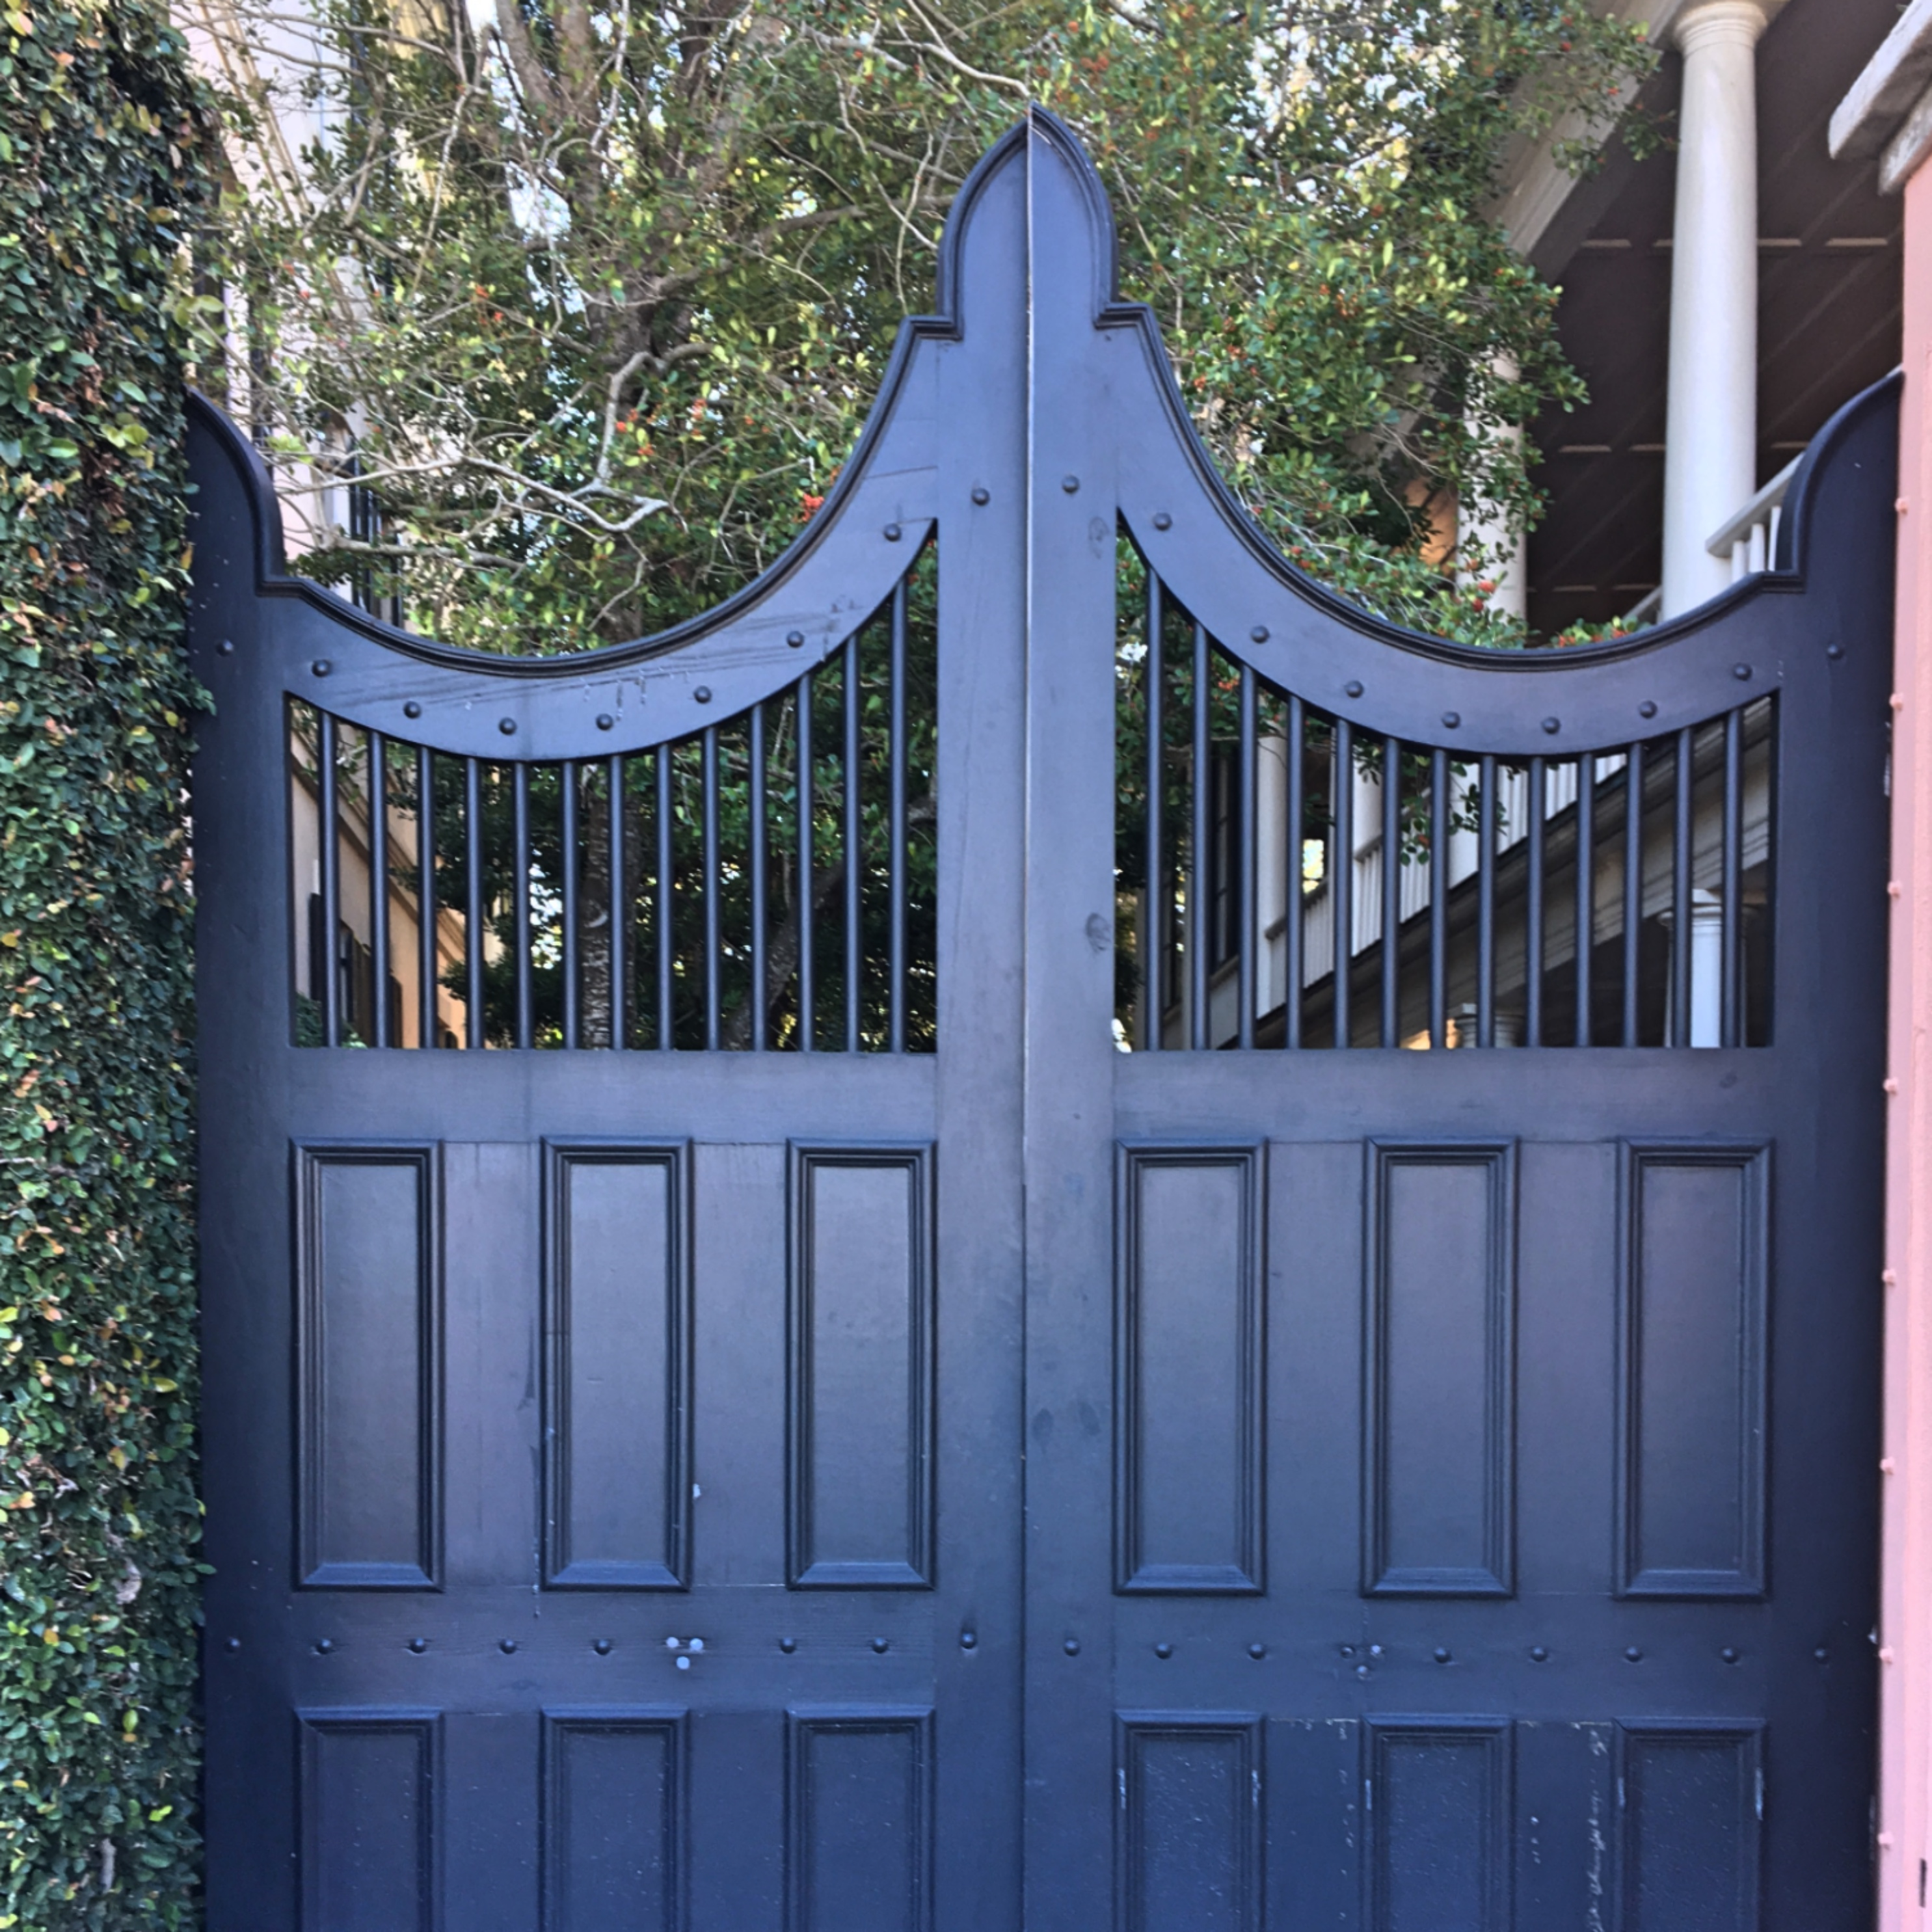 black decorative gate milled wooden gate fig ivy wall